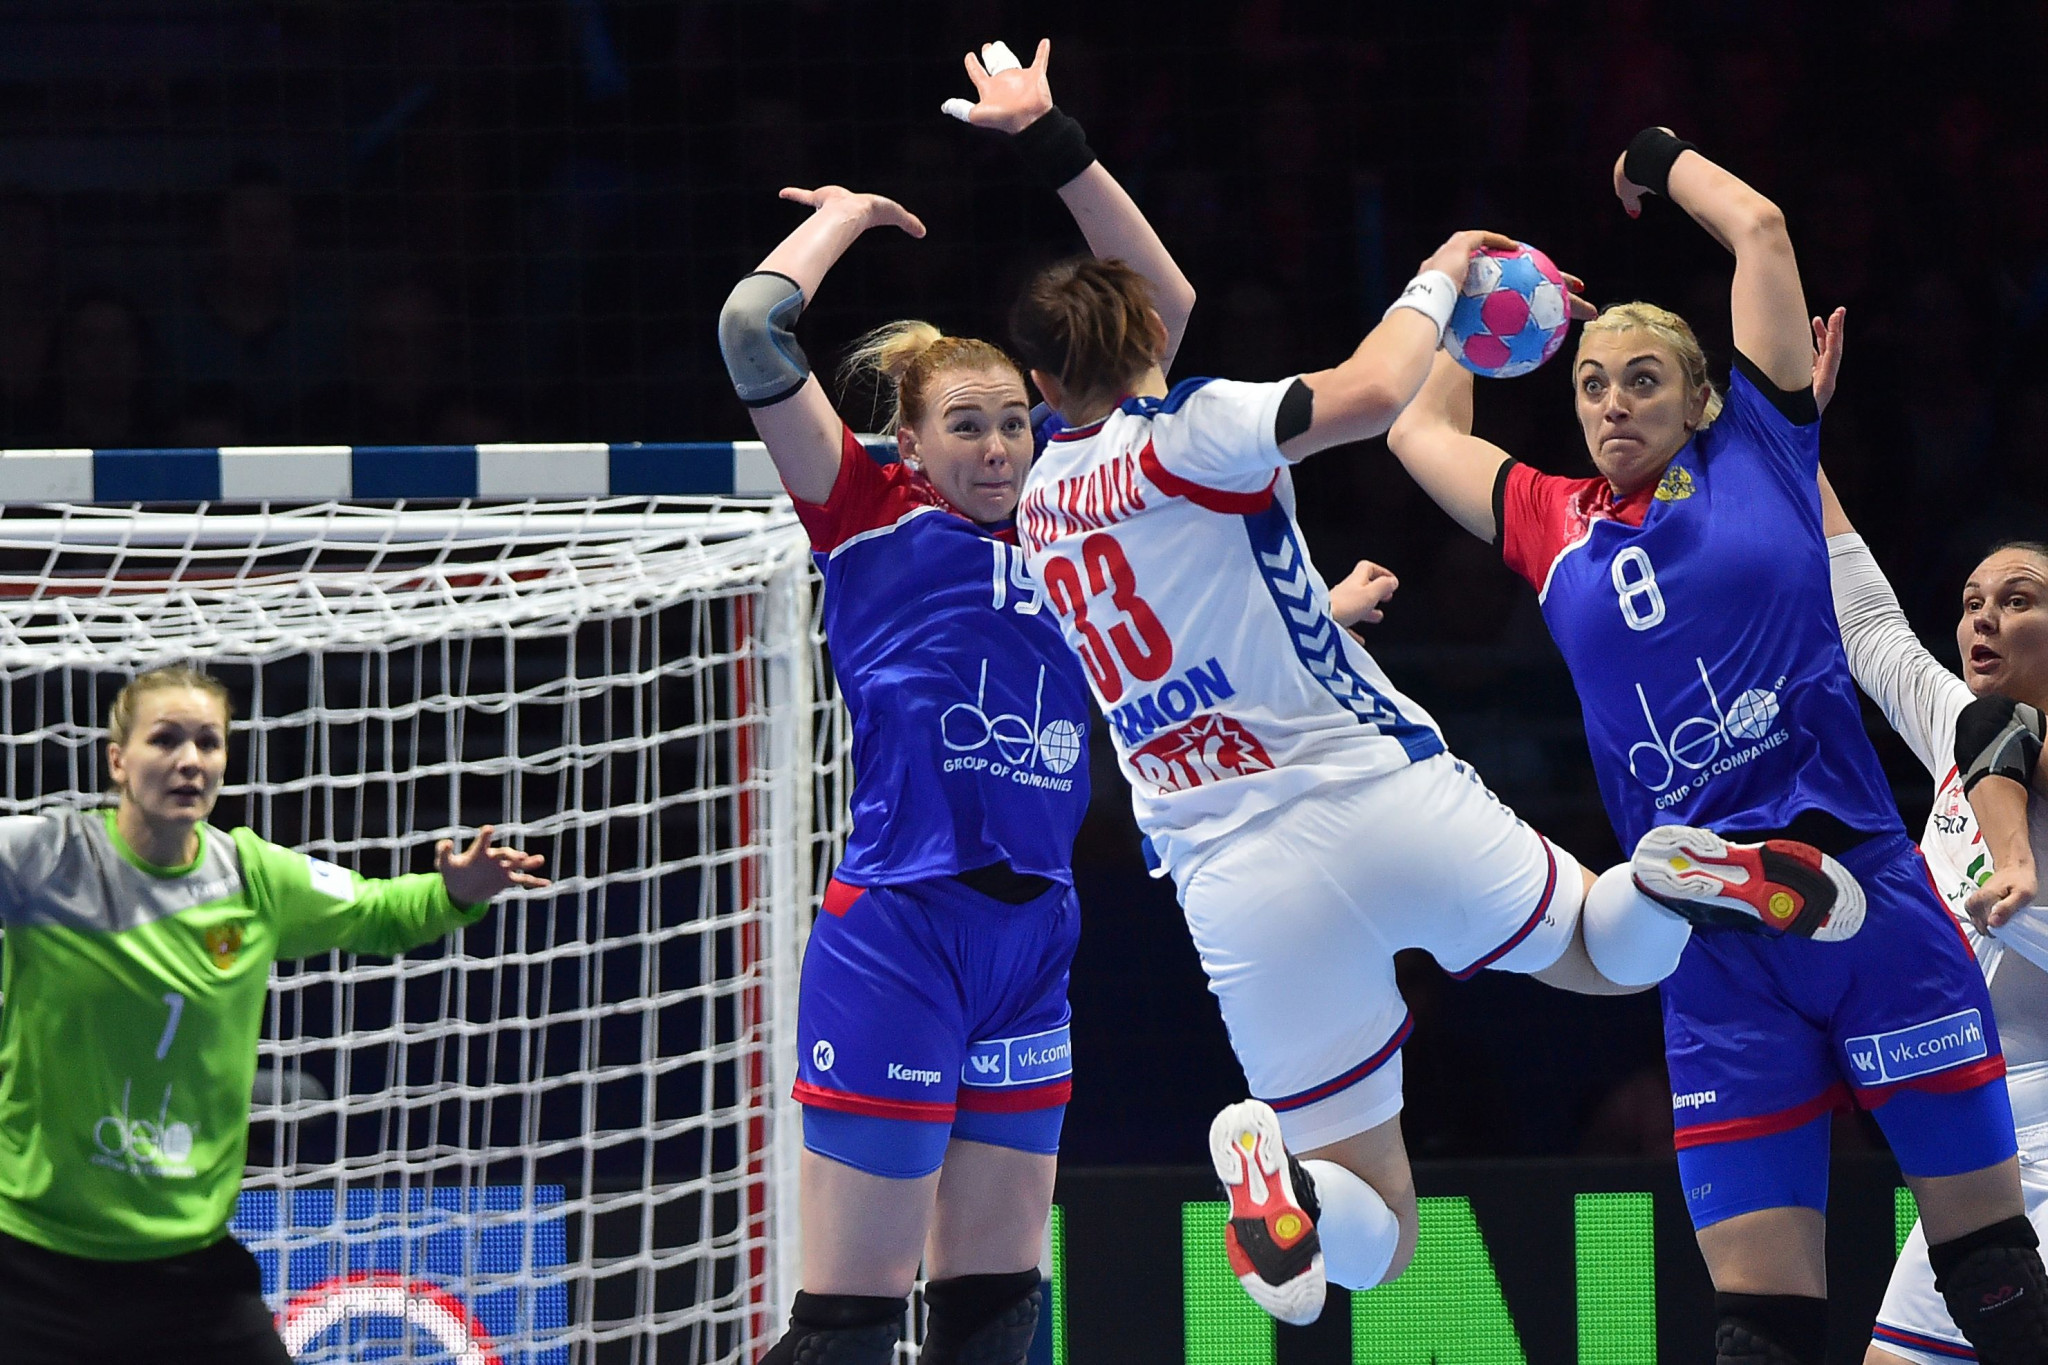 Russia defeated Serbia 29-25 in Group I of the main round at the European Women's Handball Championships ©Getty Images